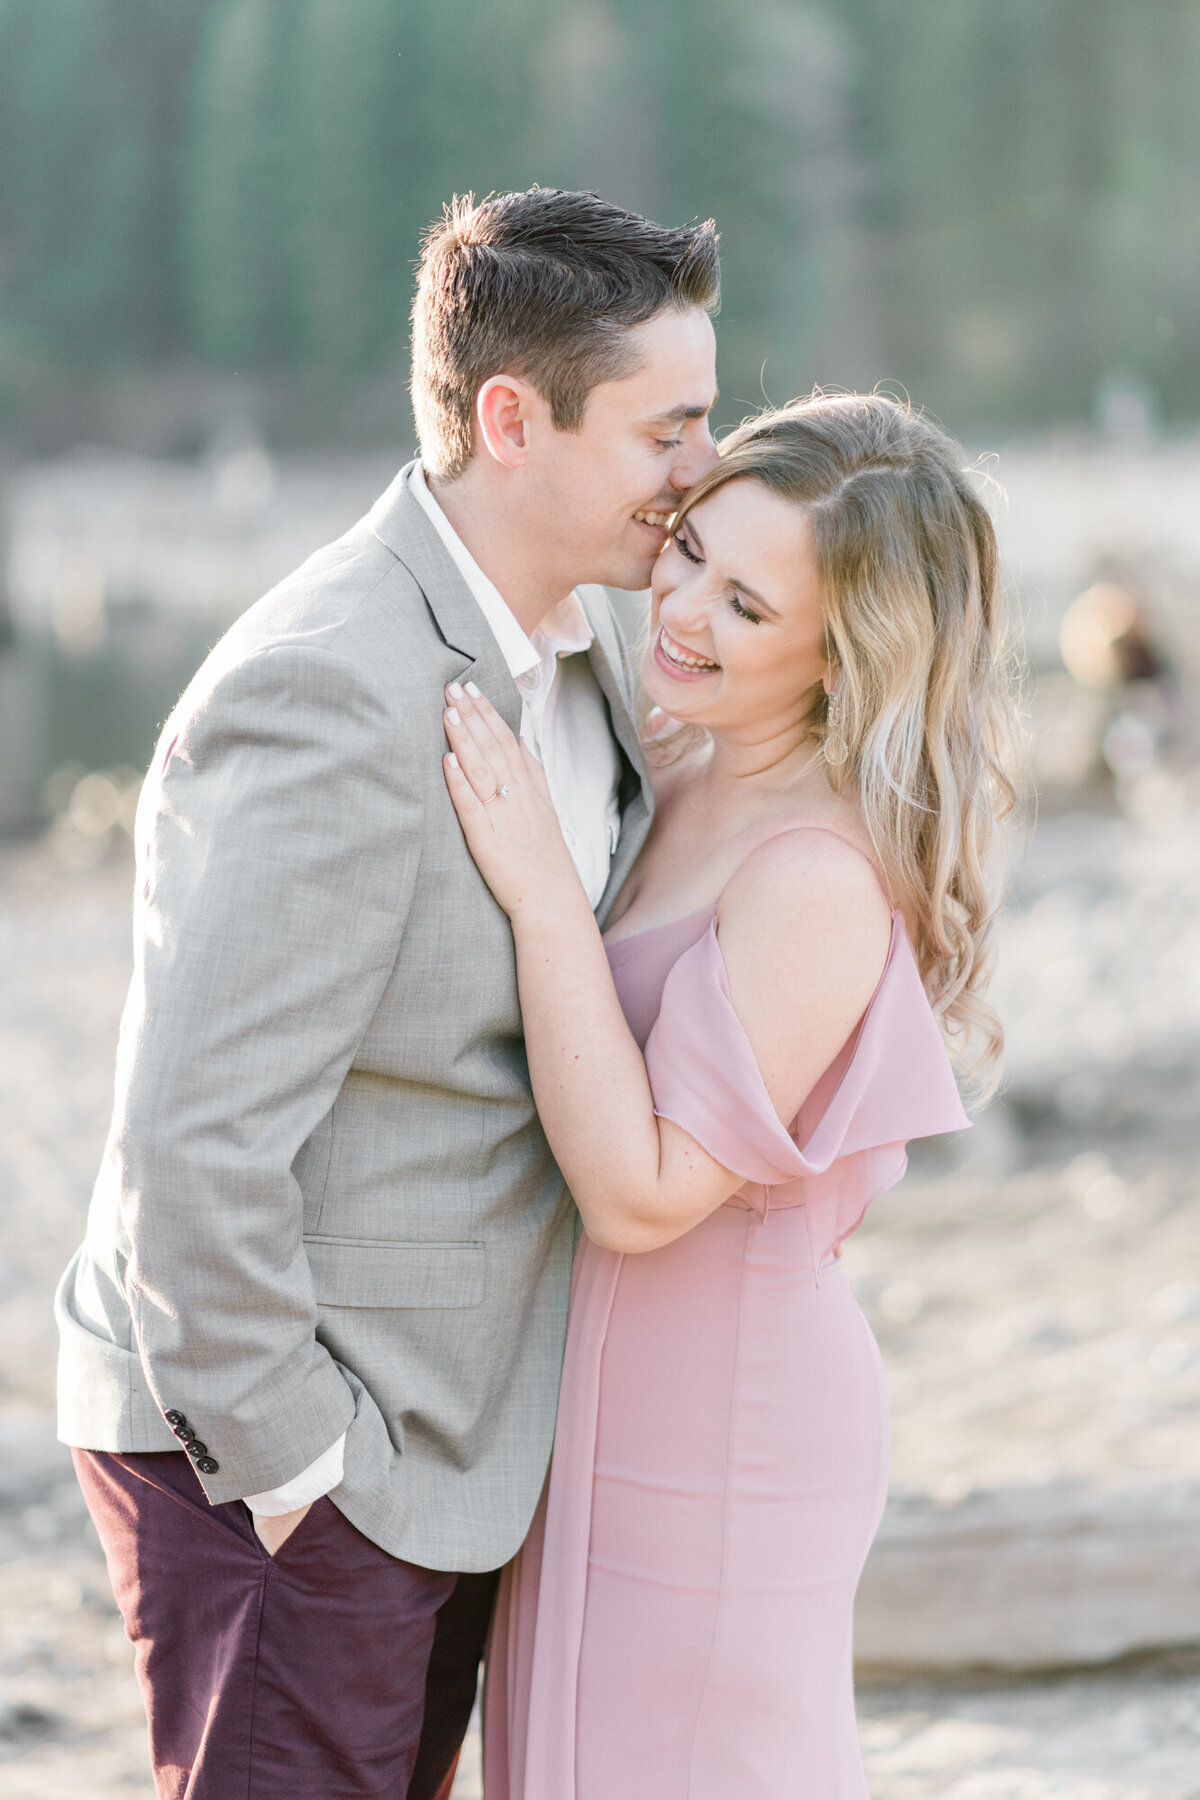 Janet Lin Photography Wedding Engagement Portrait Photographer Pacific Northwest Seattle Yelm Tacoma Washington Portland Oregon Light Airy Fine Art9